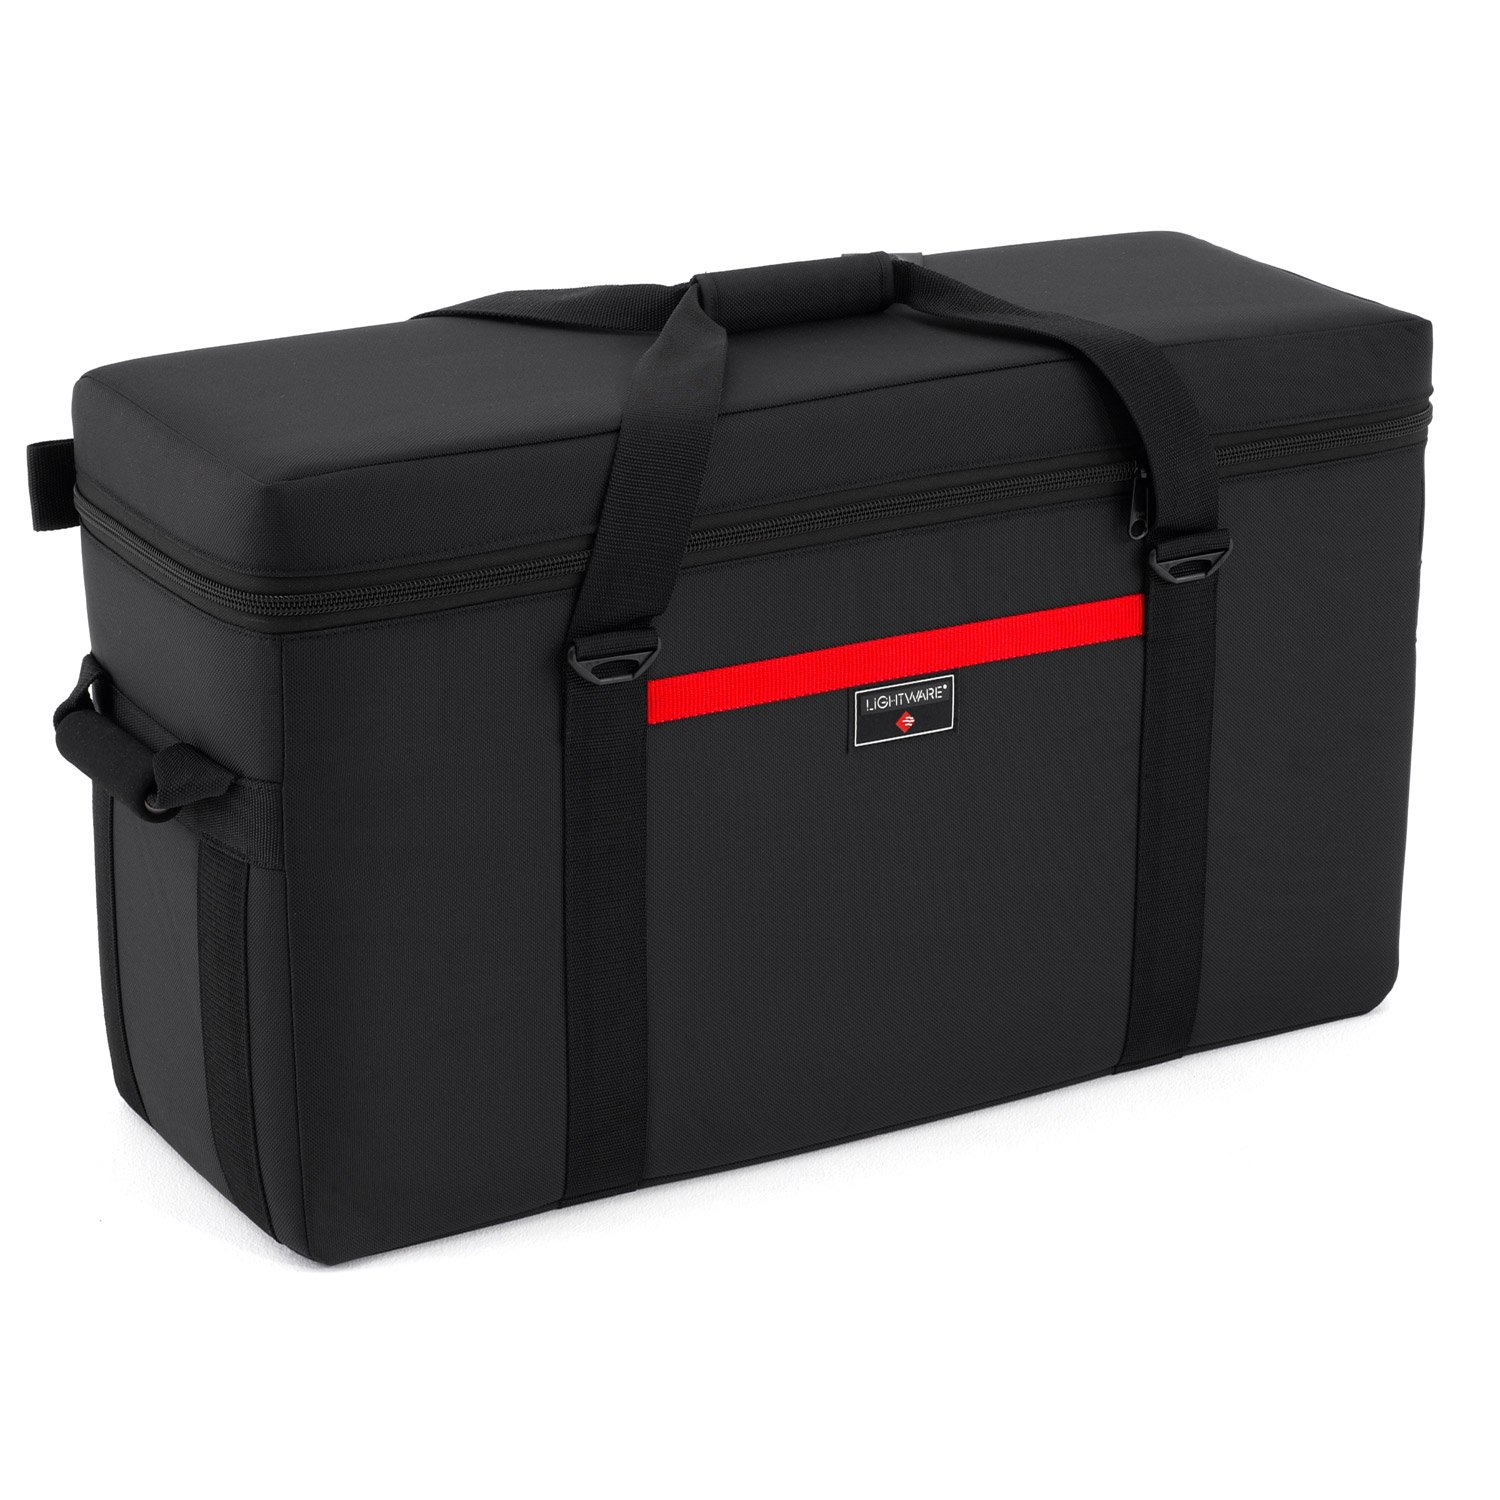 T4444 | Four Head Strobe Case